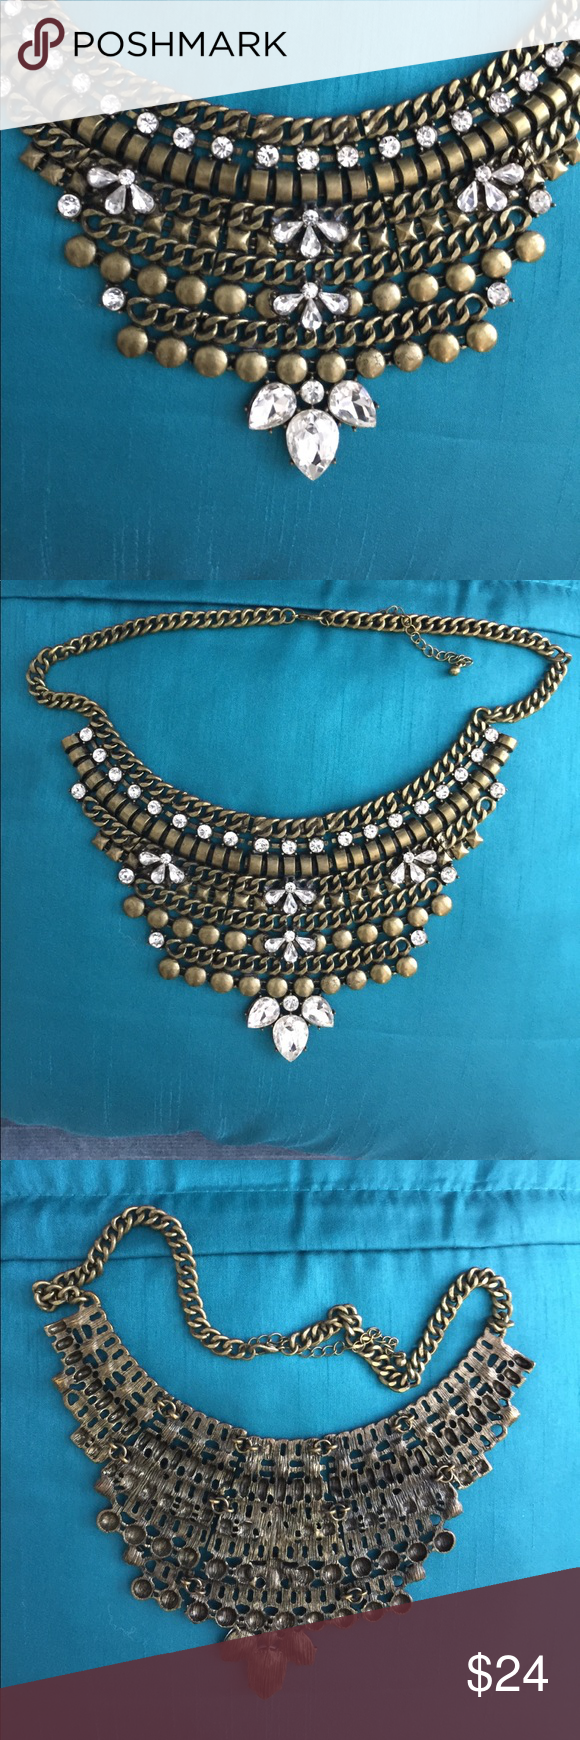 Egyptian necklace fashion costume jewelry Striking jeweled statement collar necklace with large rhinestones and brass tone adjustable length chain 12 inch chain with a 3 inch extension. Pictures tells all. Also great for prom. Fashion jewelry Jewelry Necklaces